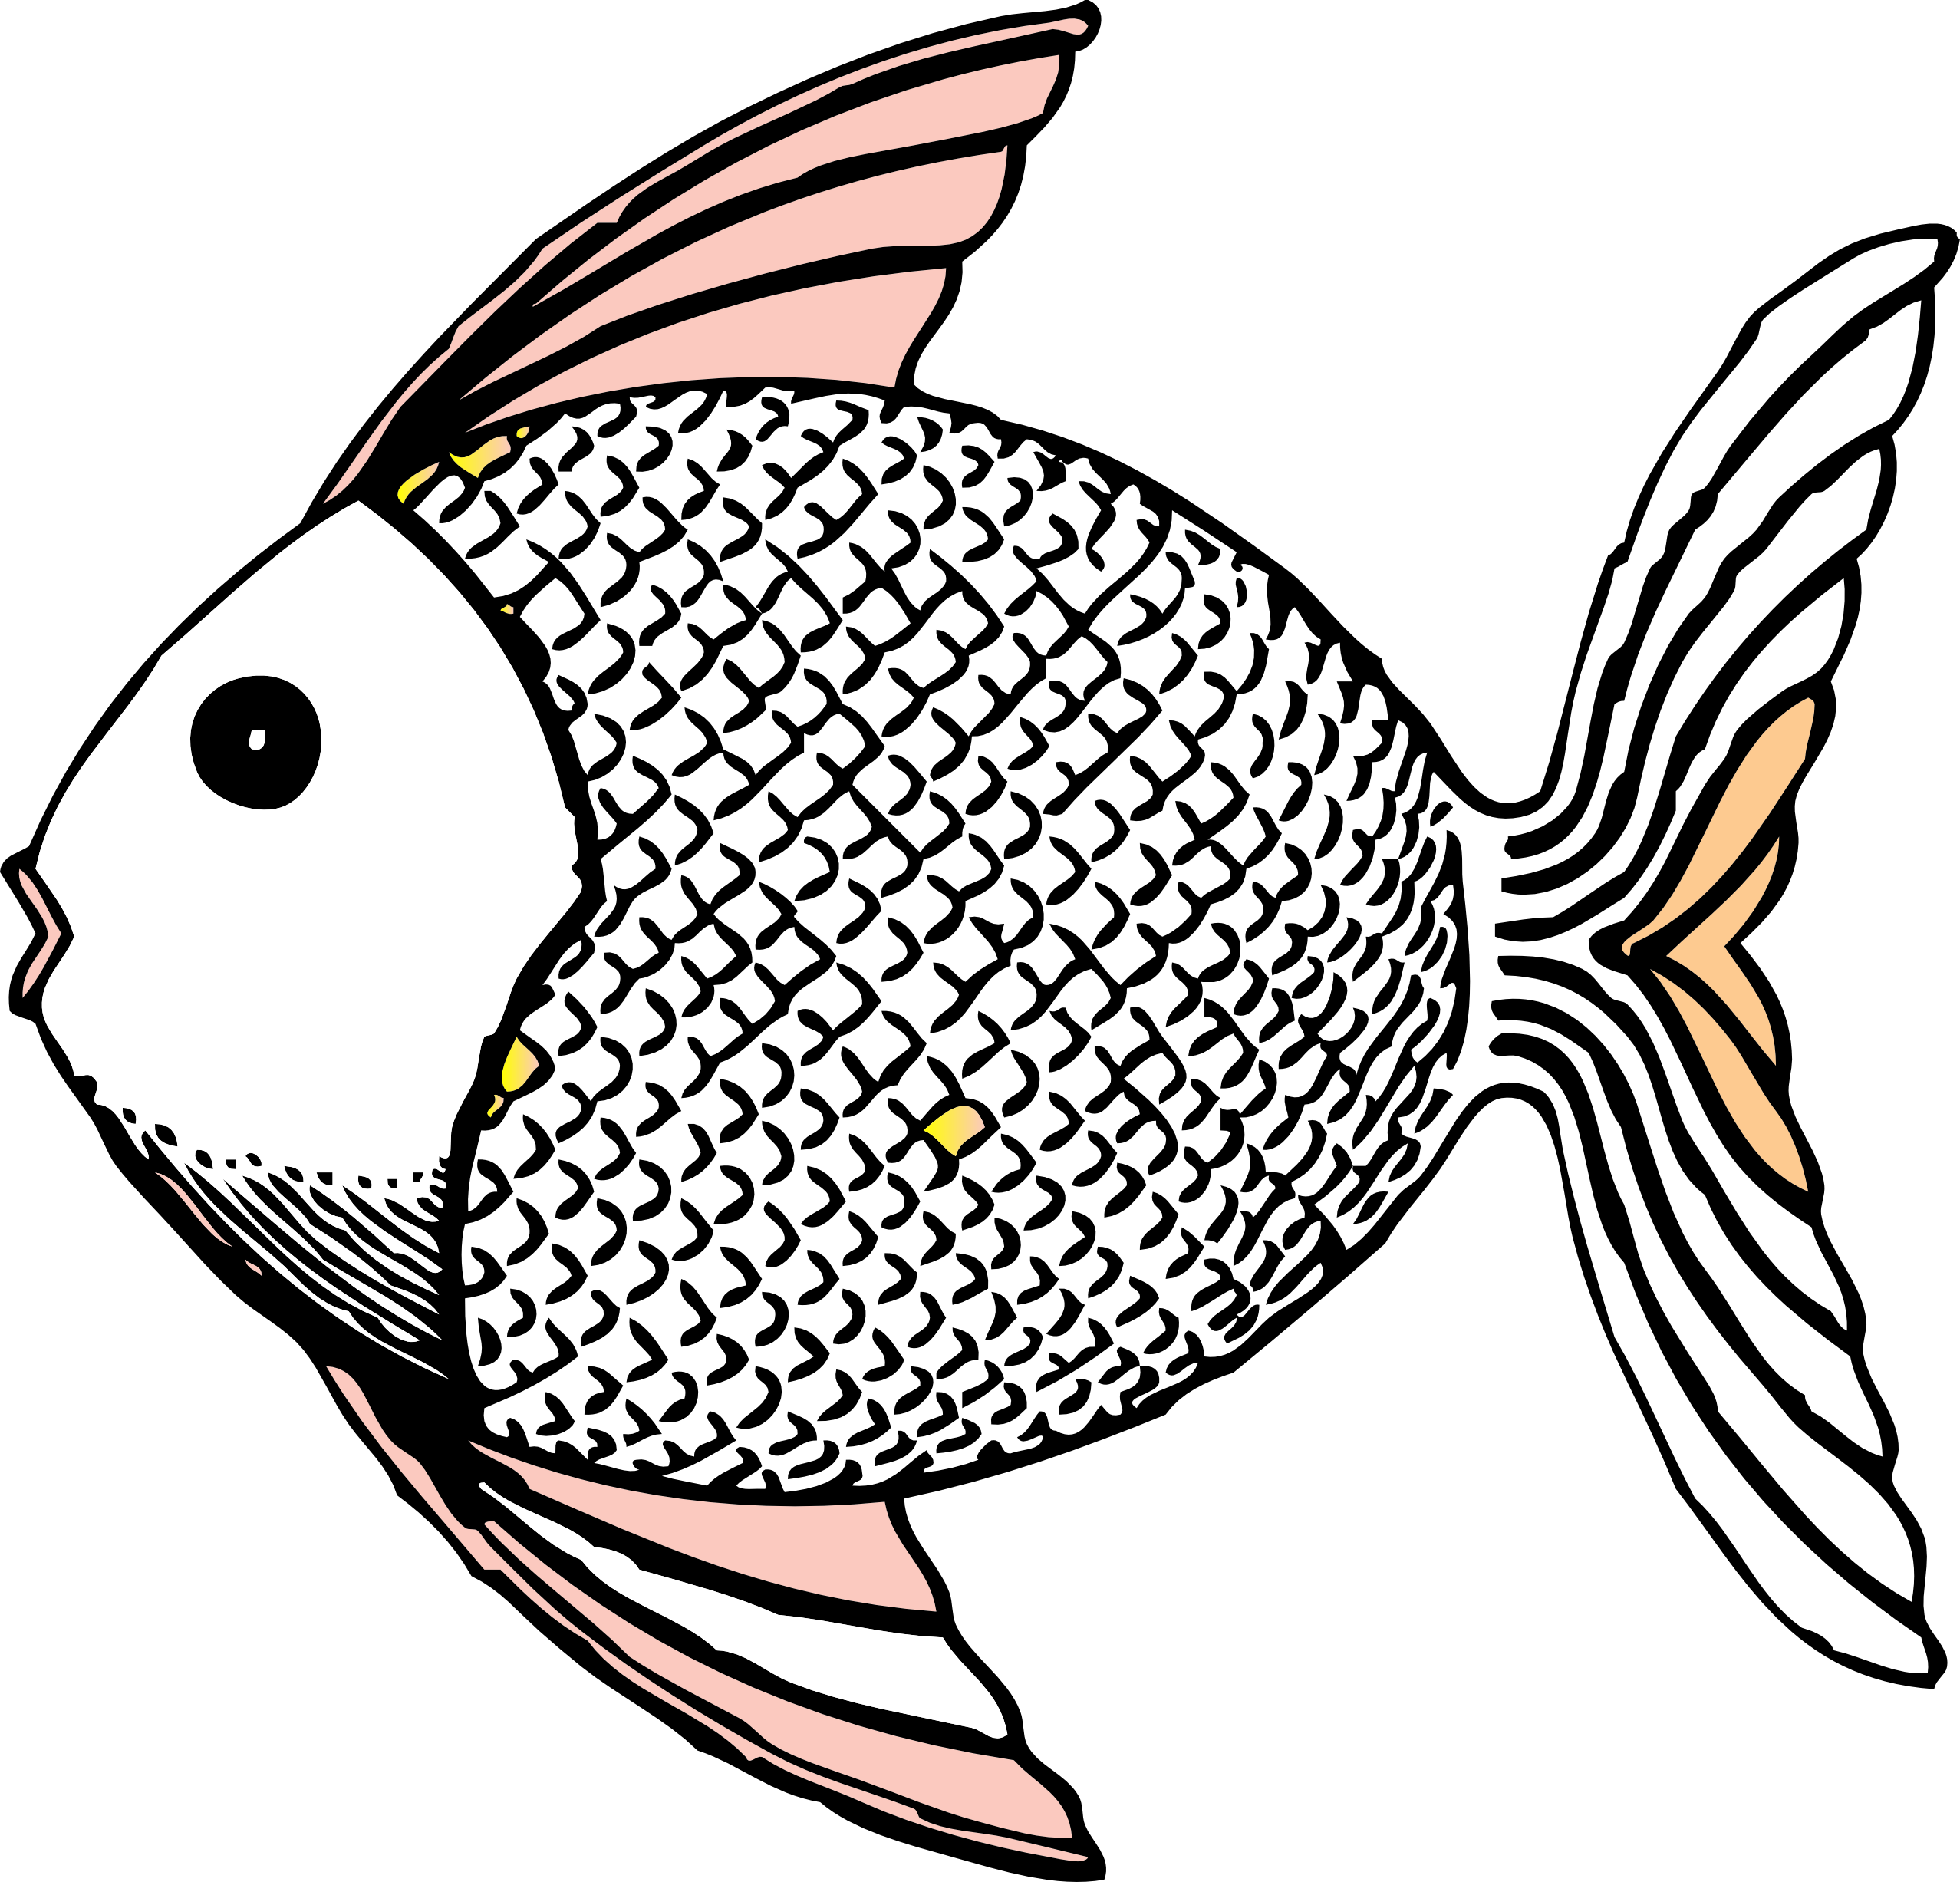 Fish clipart in black and white. Clip art tropical line